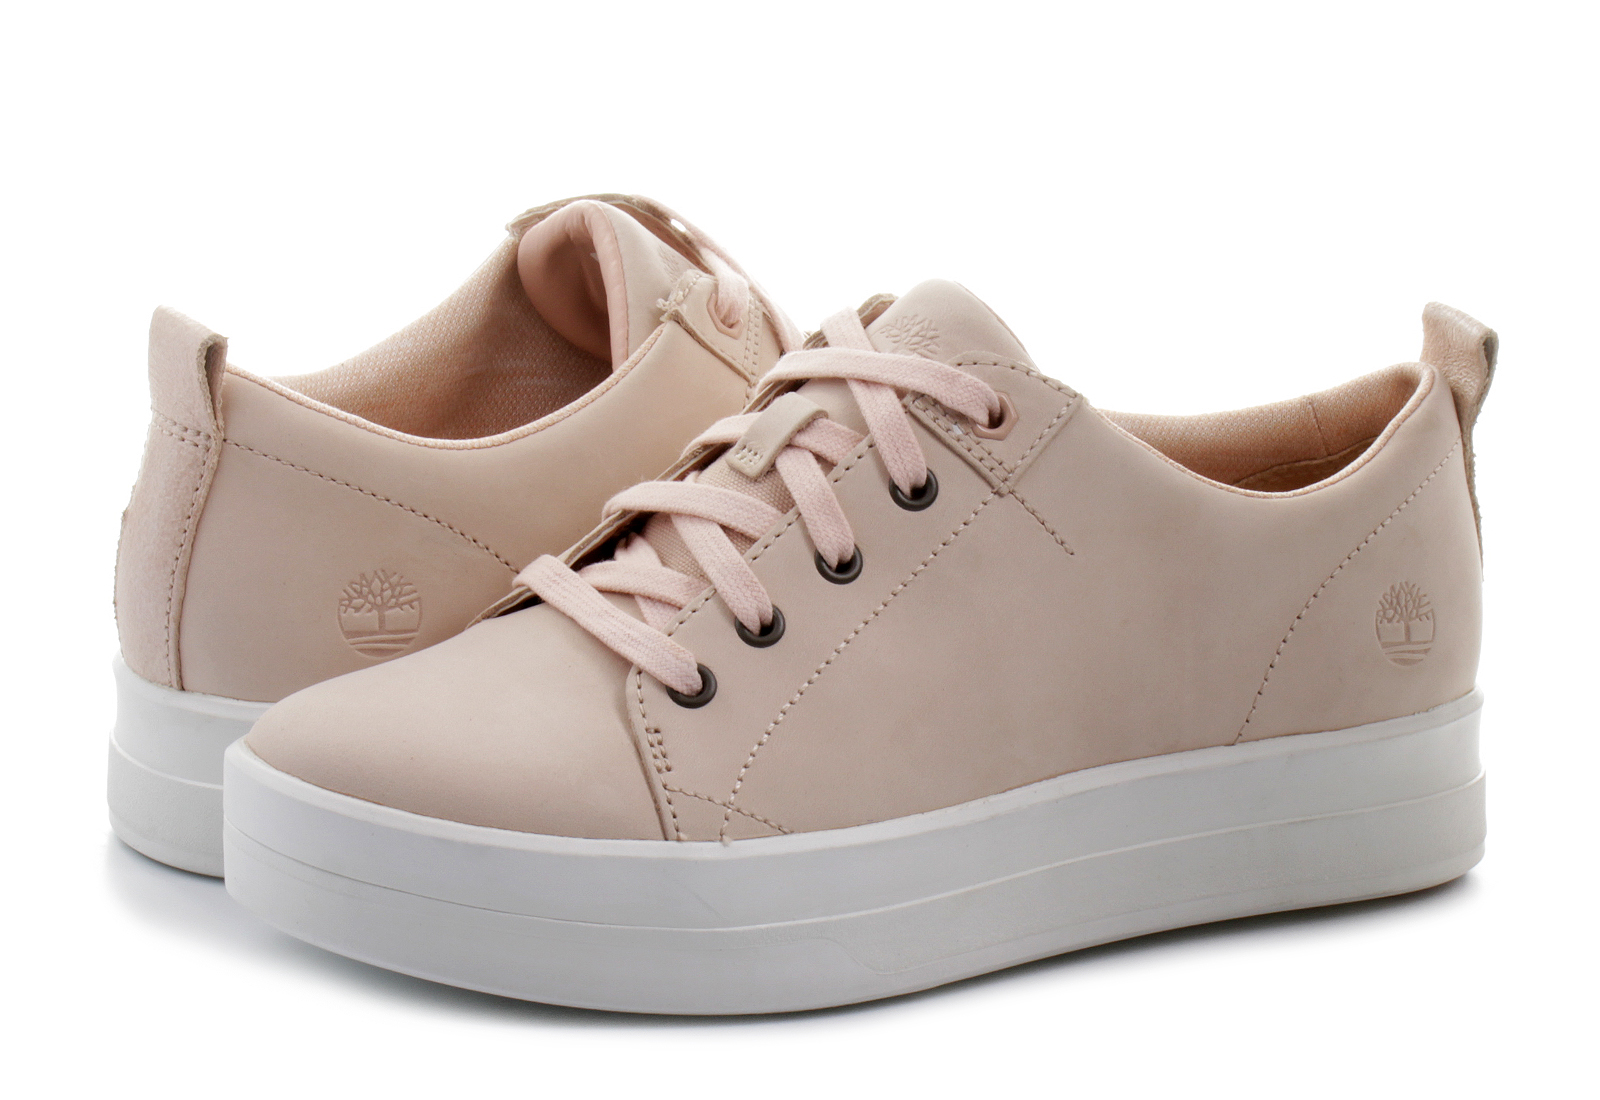 Timberland Shoes - Mayliss Ox - a1i6v-pnk - Online shop for sneakers ... 6f22ad73a541